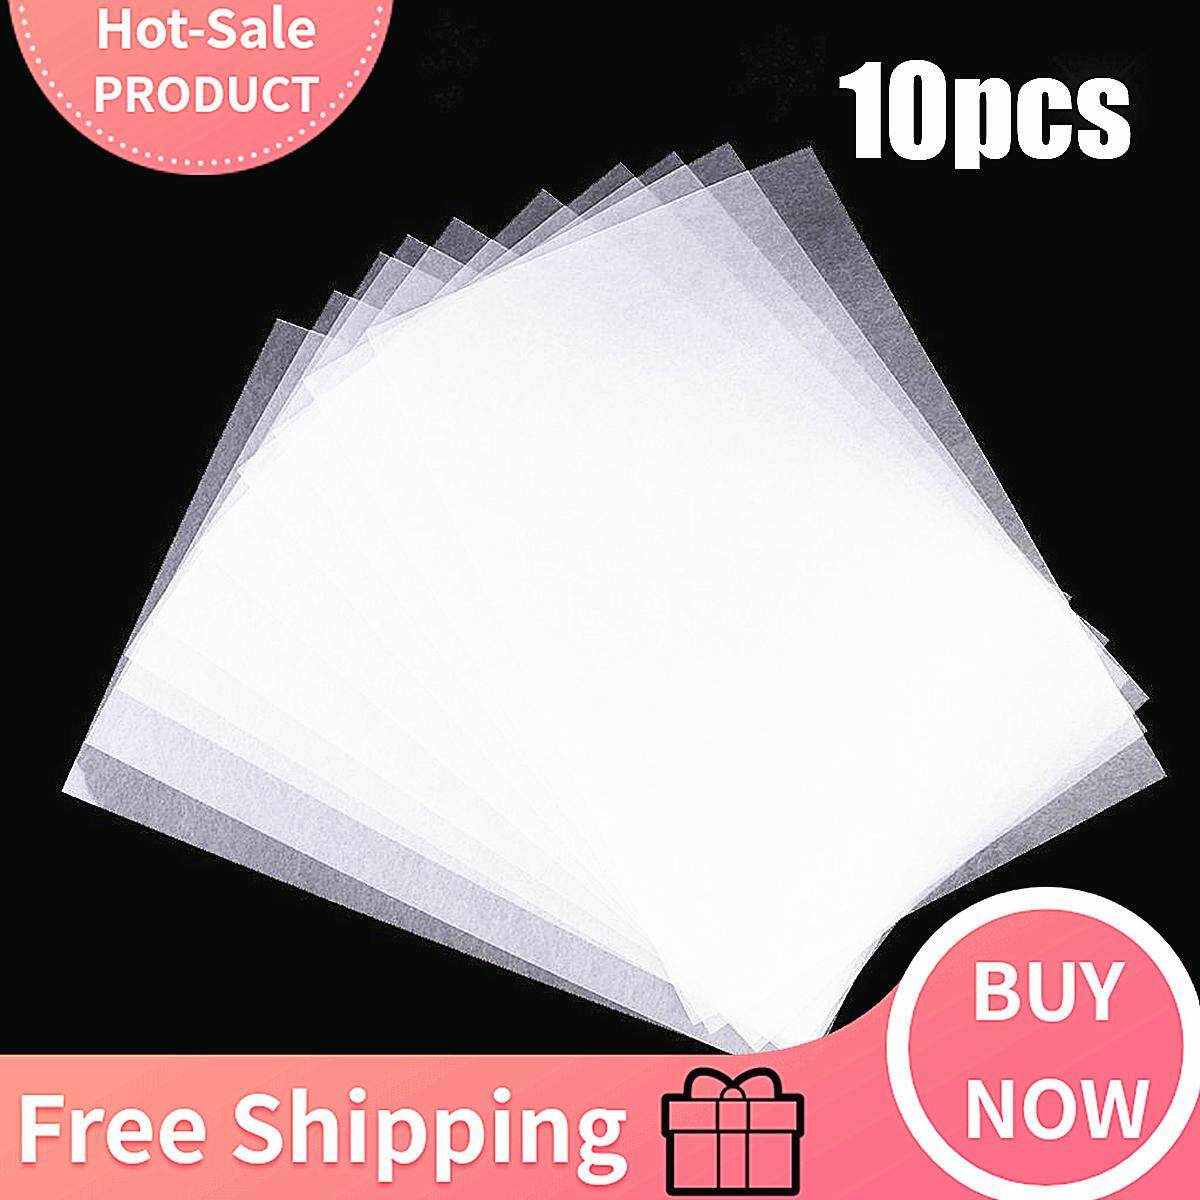 【free Shipping + Super Deal + Limited Offer】10x Heat Shrink Paper Film Sheets For Diy Jewelry Making Craft Deco Rough Polish By Glimmer.